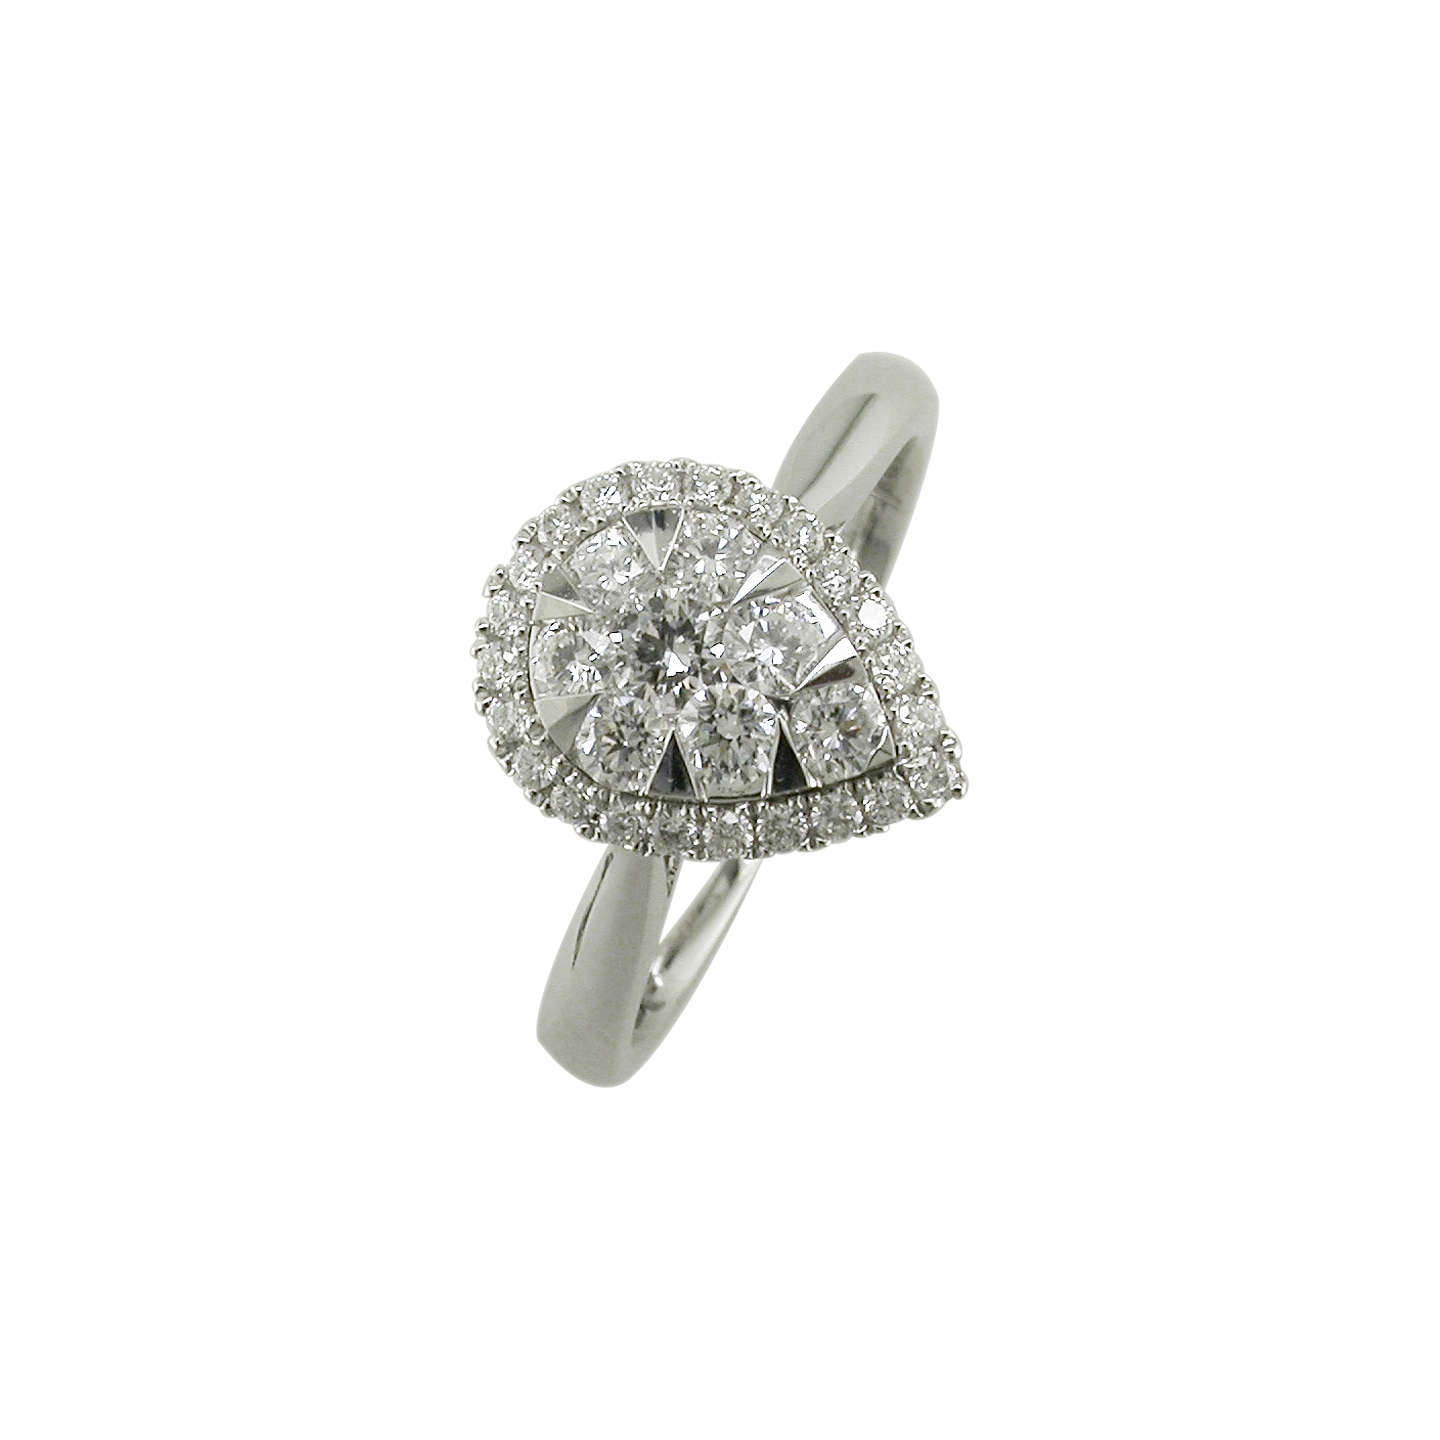 rings square studs white stud gold image shaped baguette in a earrings cluster diamond ladies cushion engagement